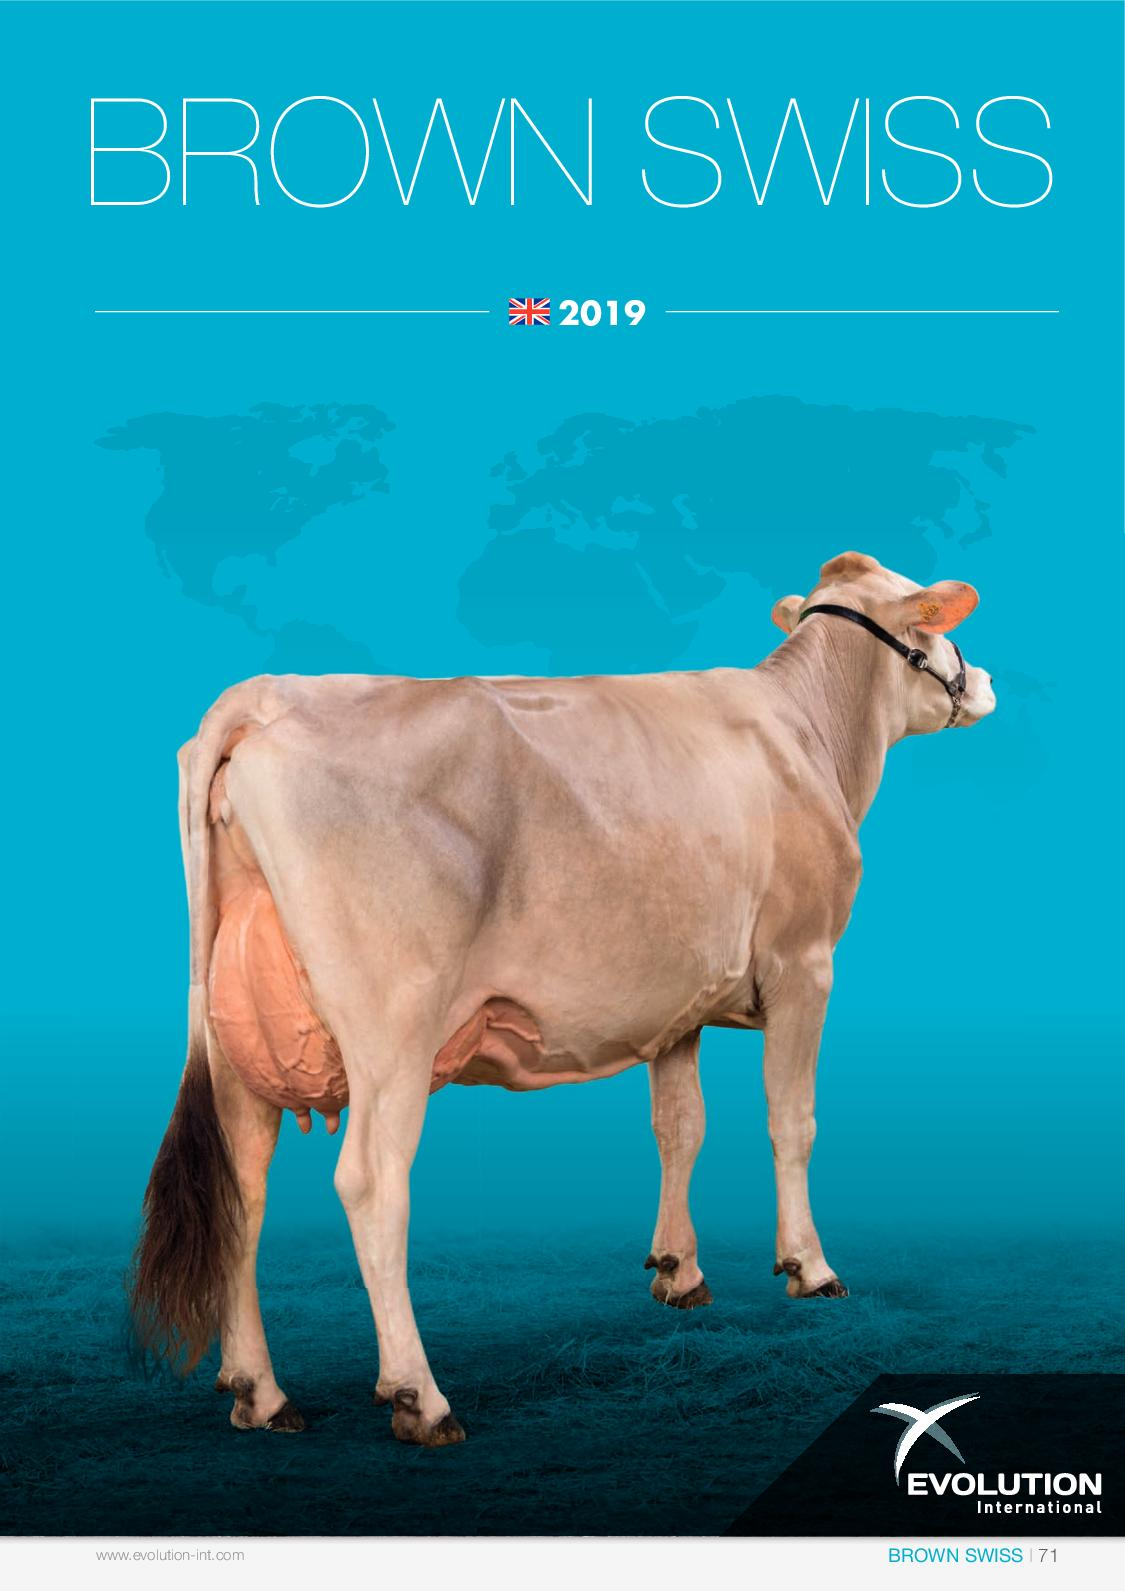 Brown Swiss - EN 2019 - Evolution International